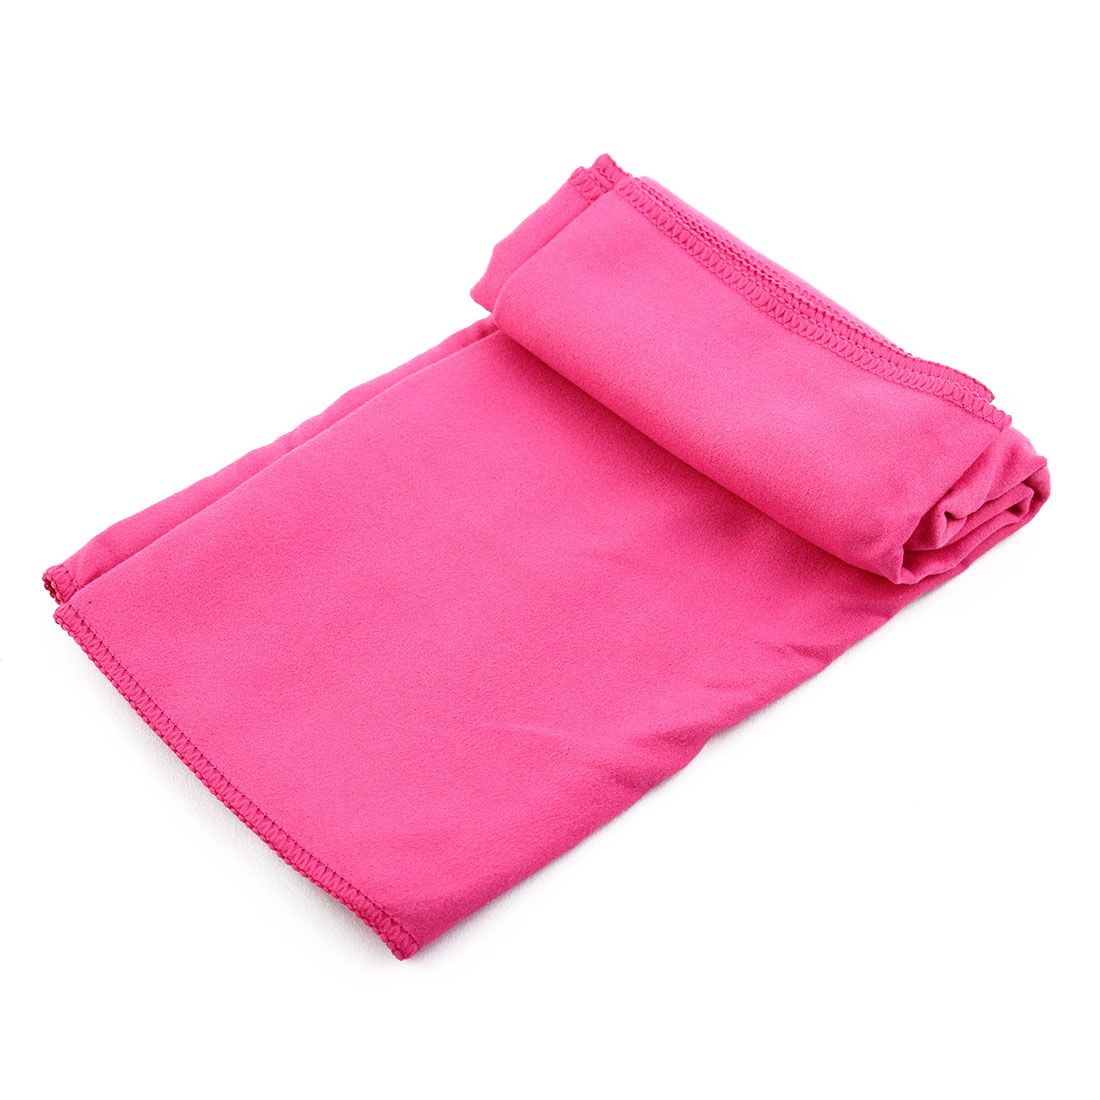 Bluefield Authorized Outdoor Travel Microfiber Quick Drying Sports Towel Workout Exercise Facecloth Fuchsia 70 x 30cm